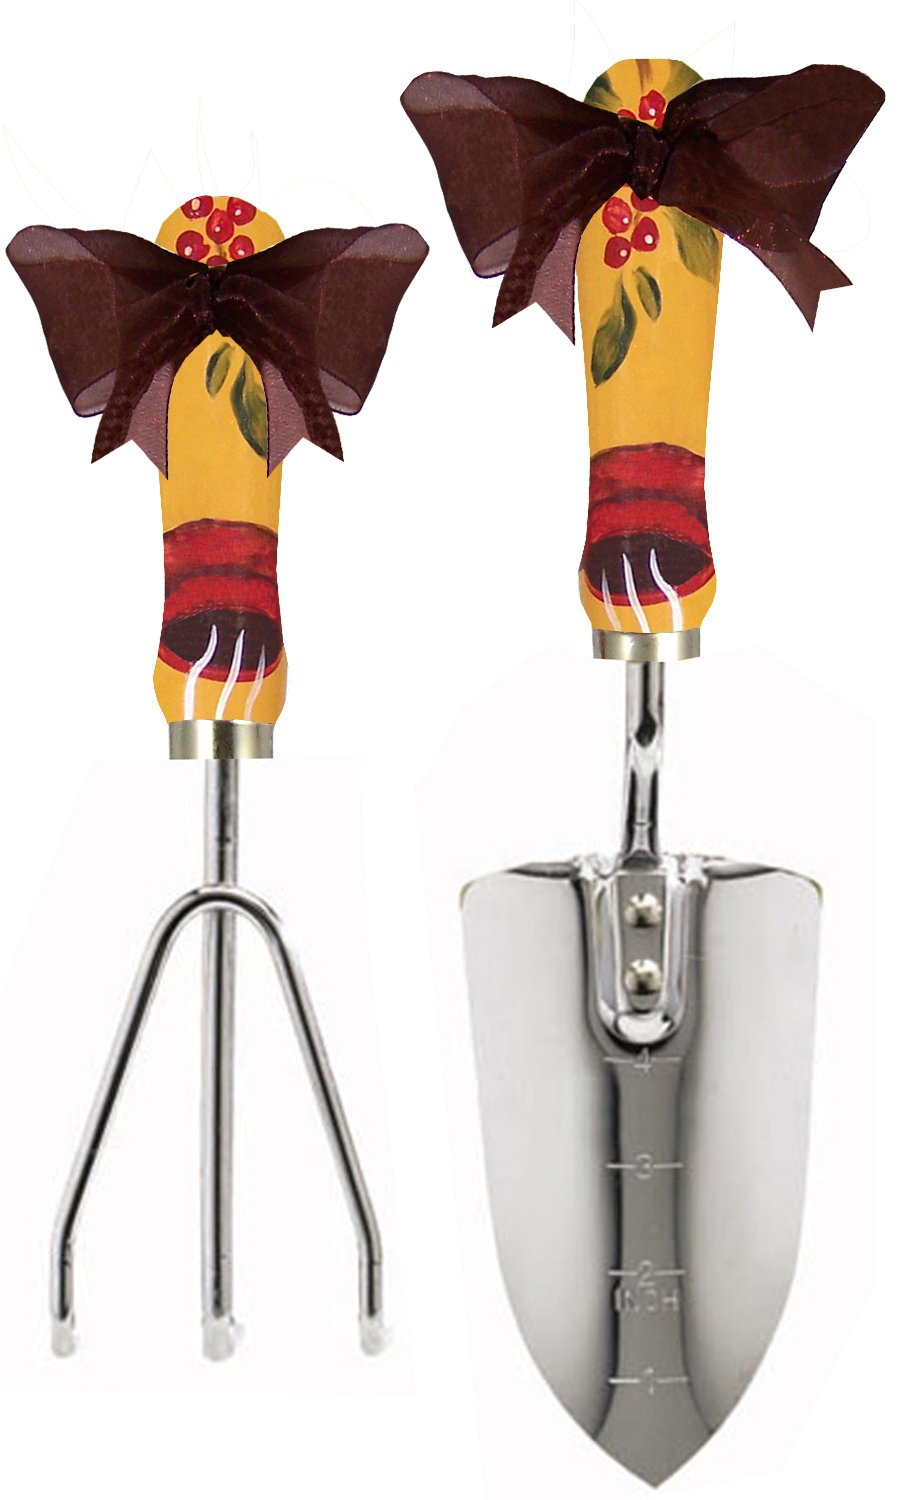 Cute Tools Stainless Steel Garden Shovel and Three Prong Rake - Landscaping Instrument, Hand Painted Wooden Handle In The USA, Durable Yard and Gardening Equipment From CuteTools! - Art For A Cause, Honduran Coffee Cup